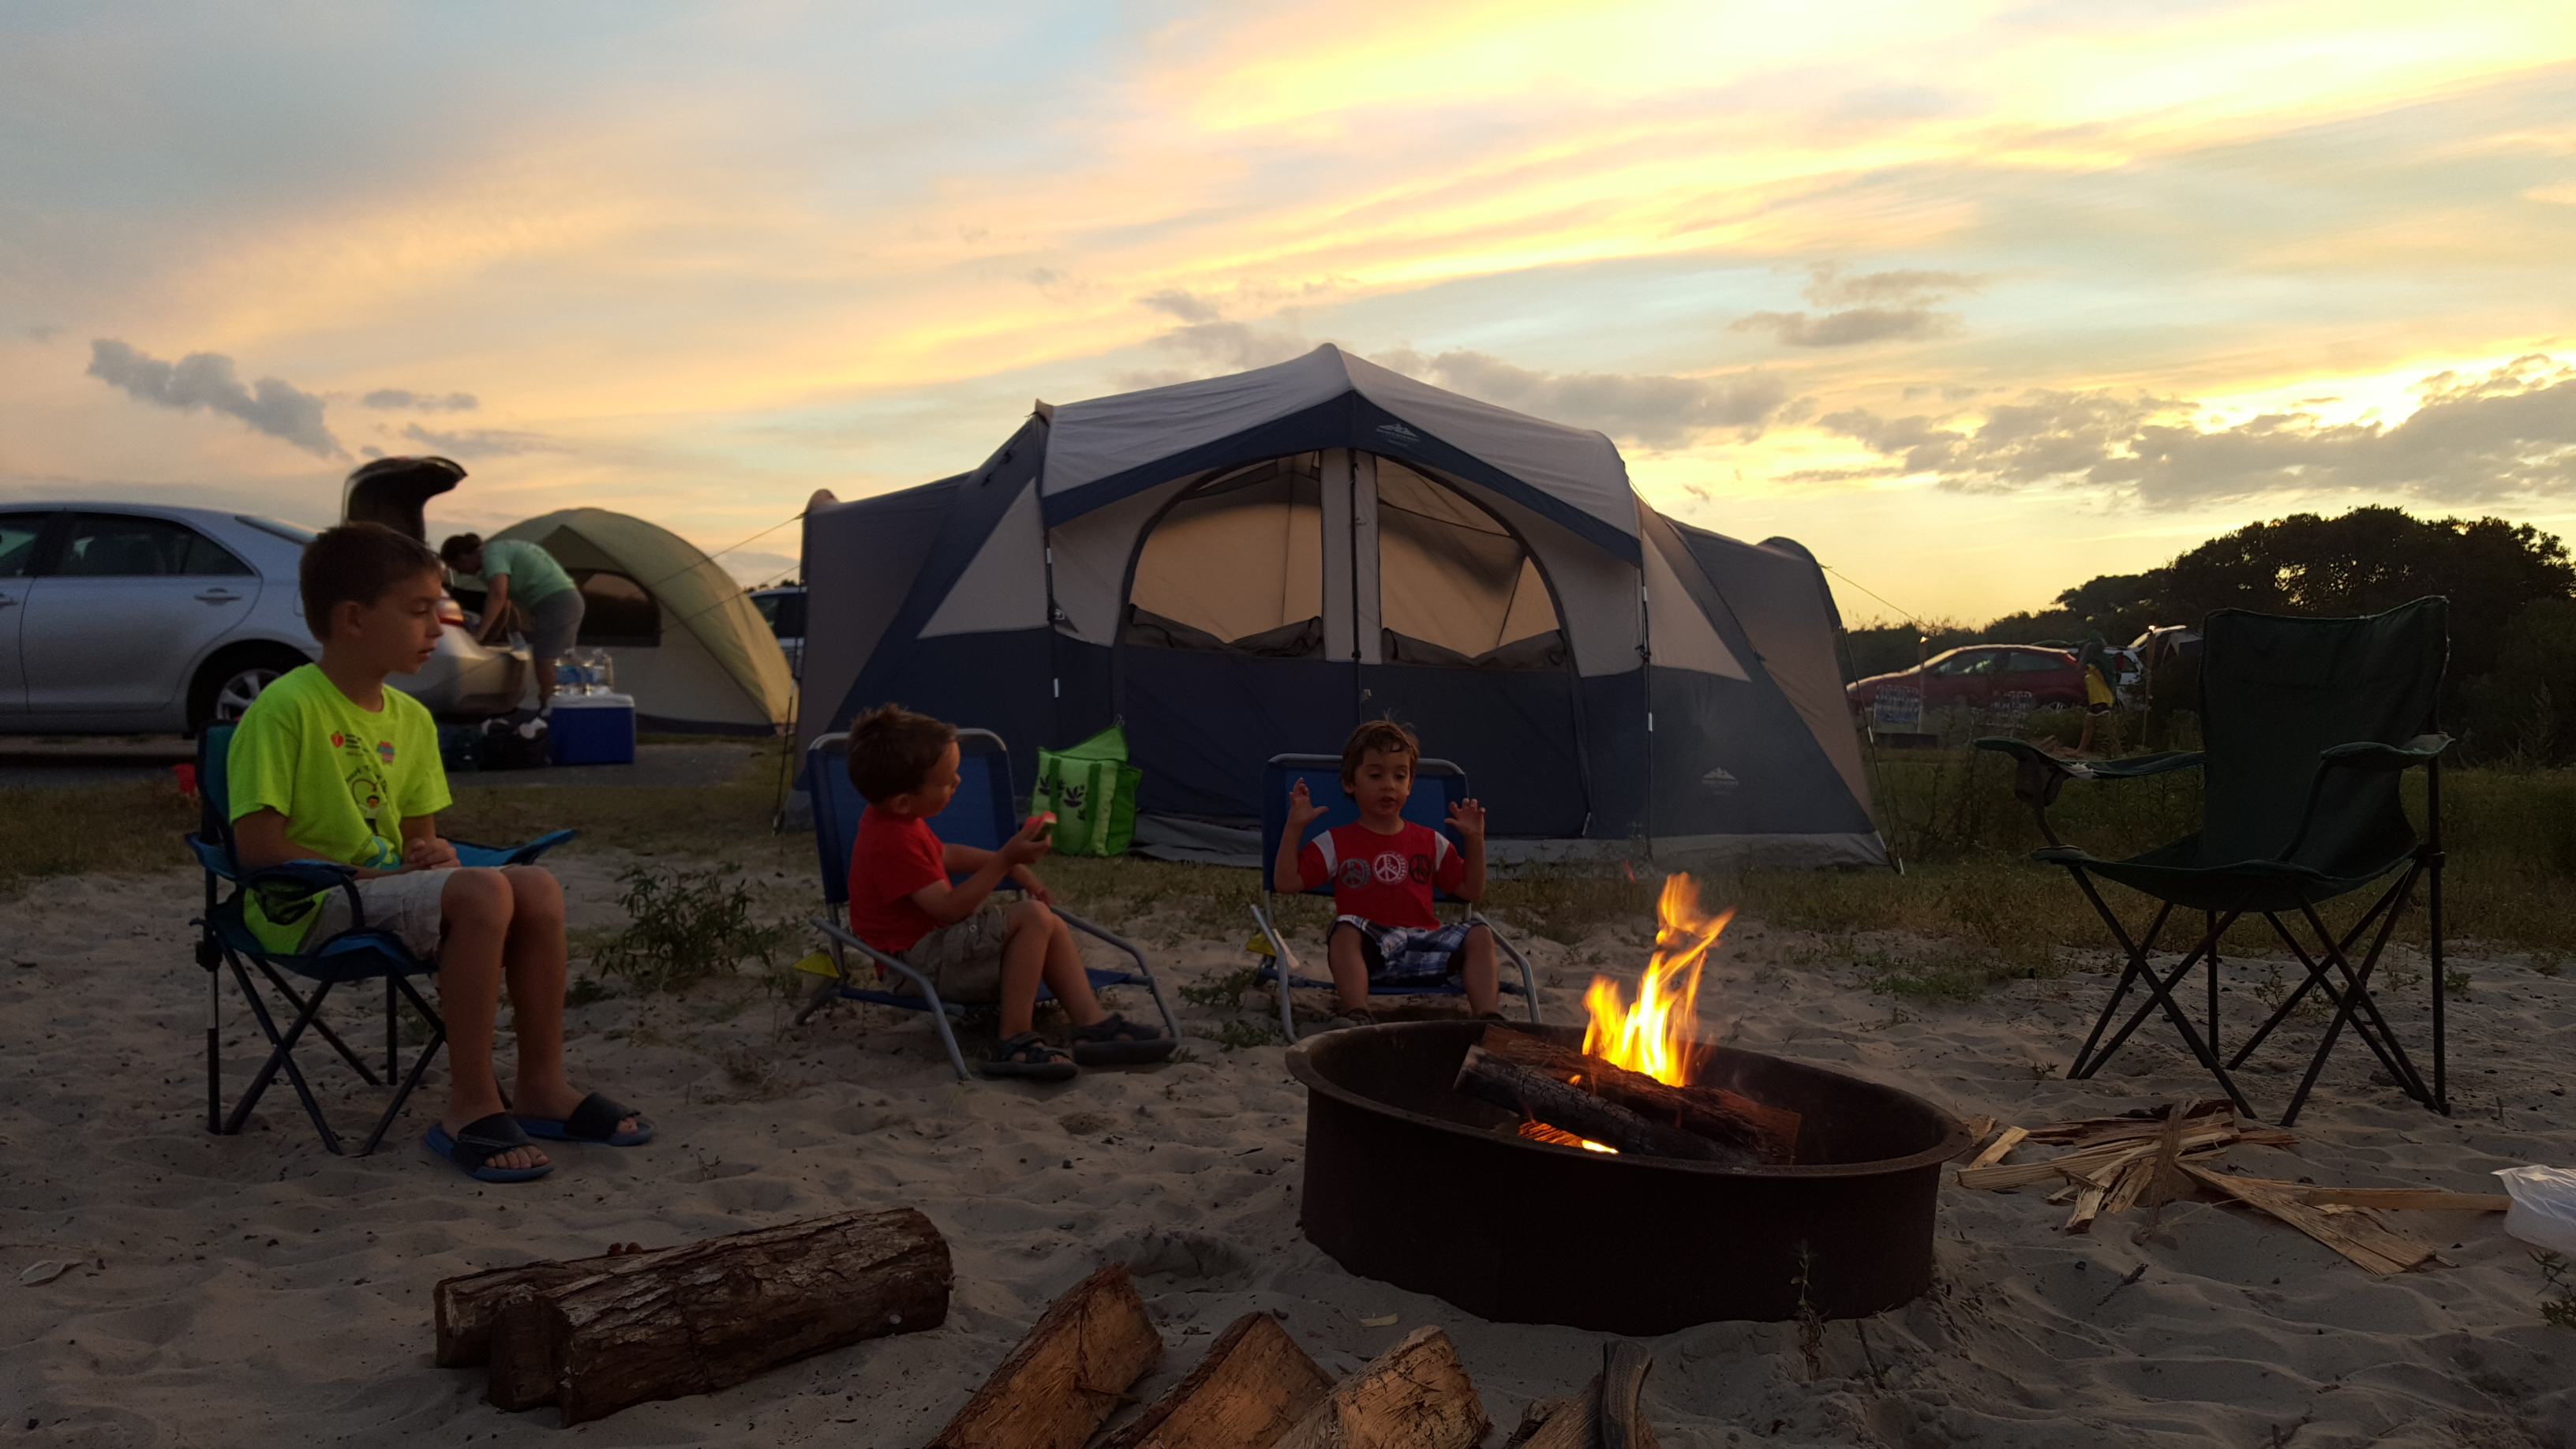 A Night of Camping